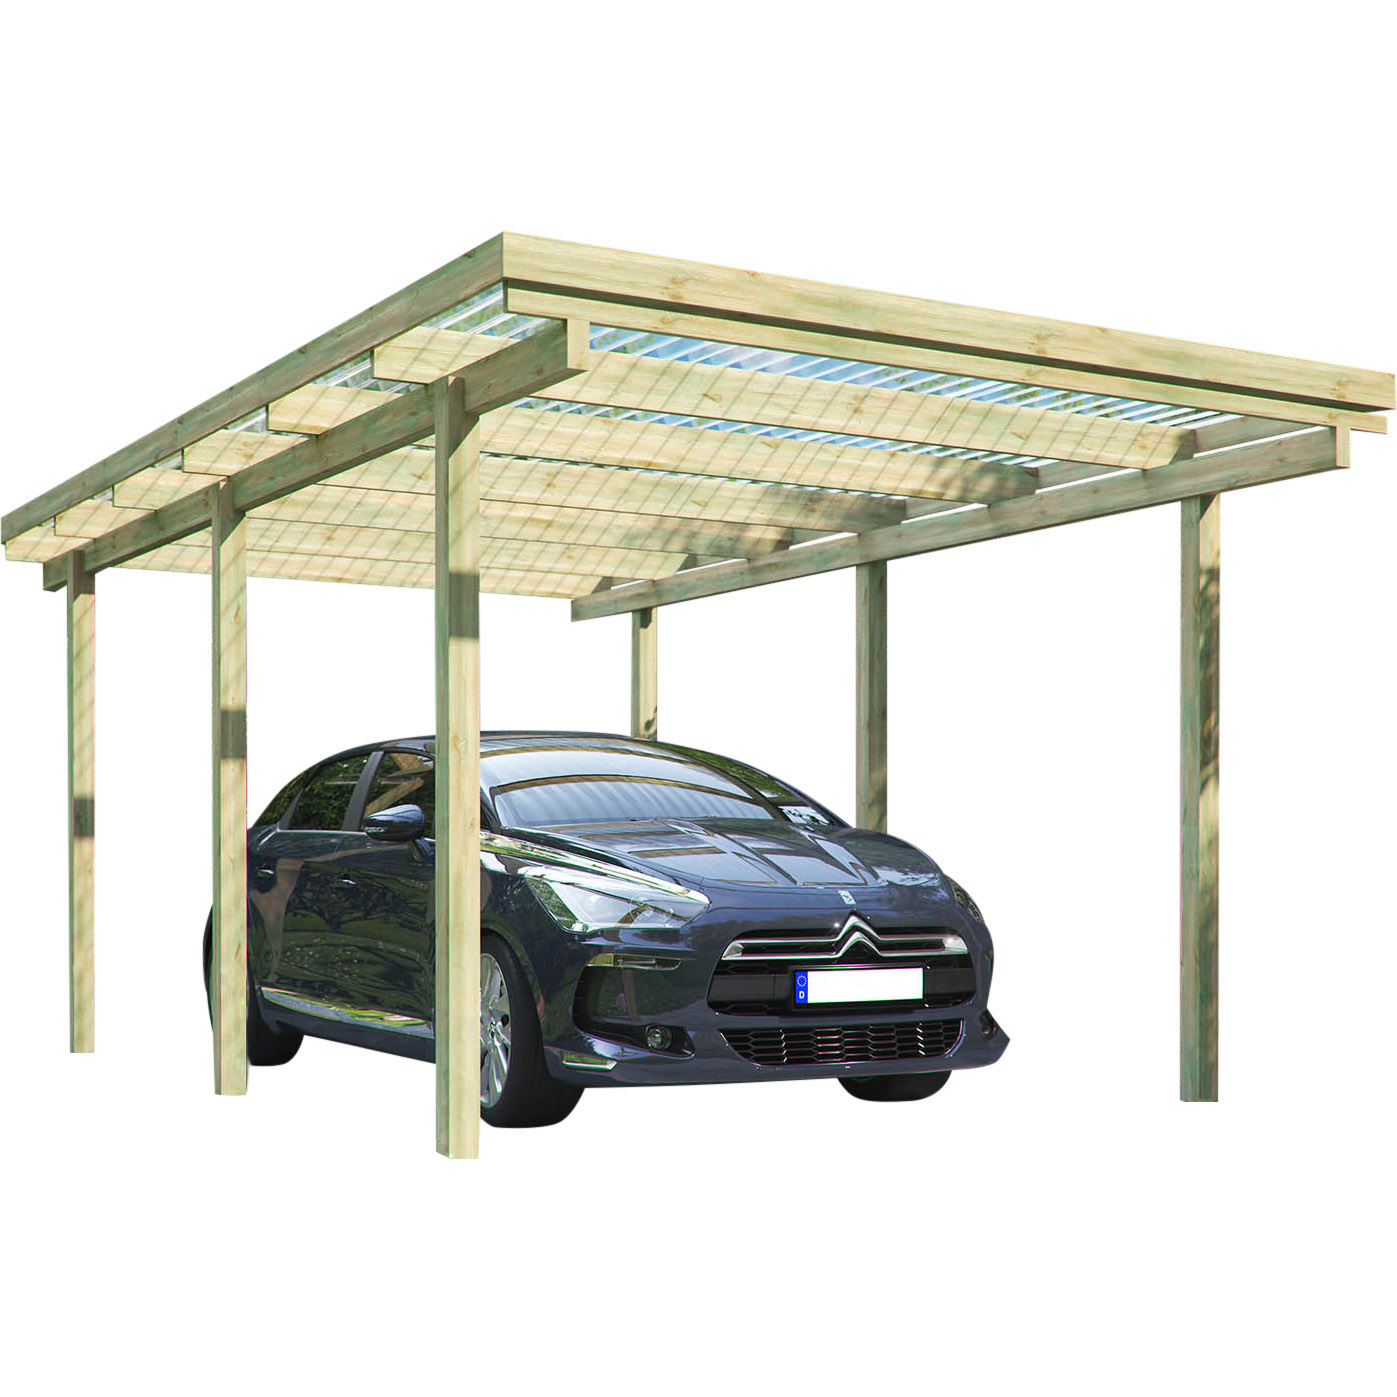 carport elbe 1 einzelcarport 3 04 x 5 10 m carports carports garagen garten freizeit. Black Bedroom Furniture Sets. Home Design Ideas